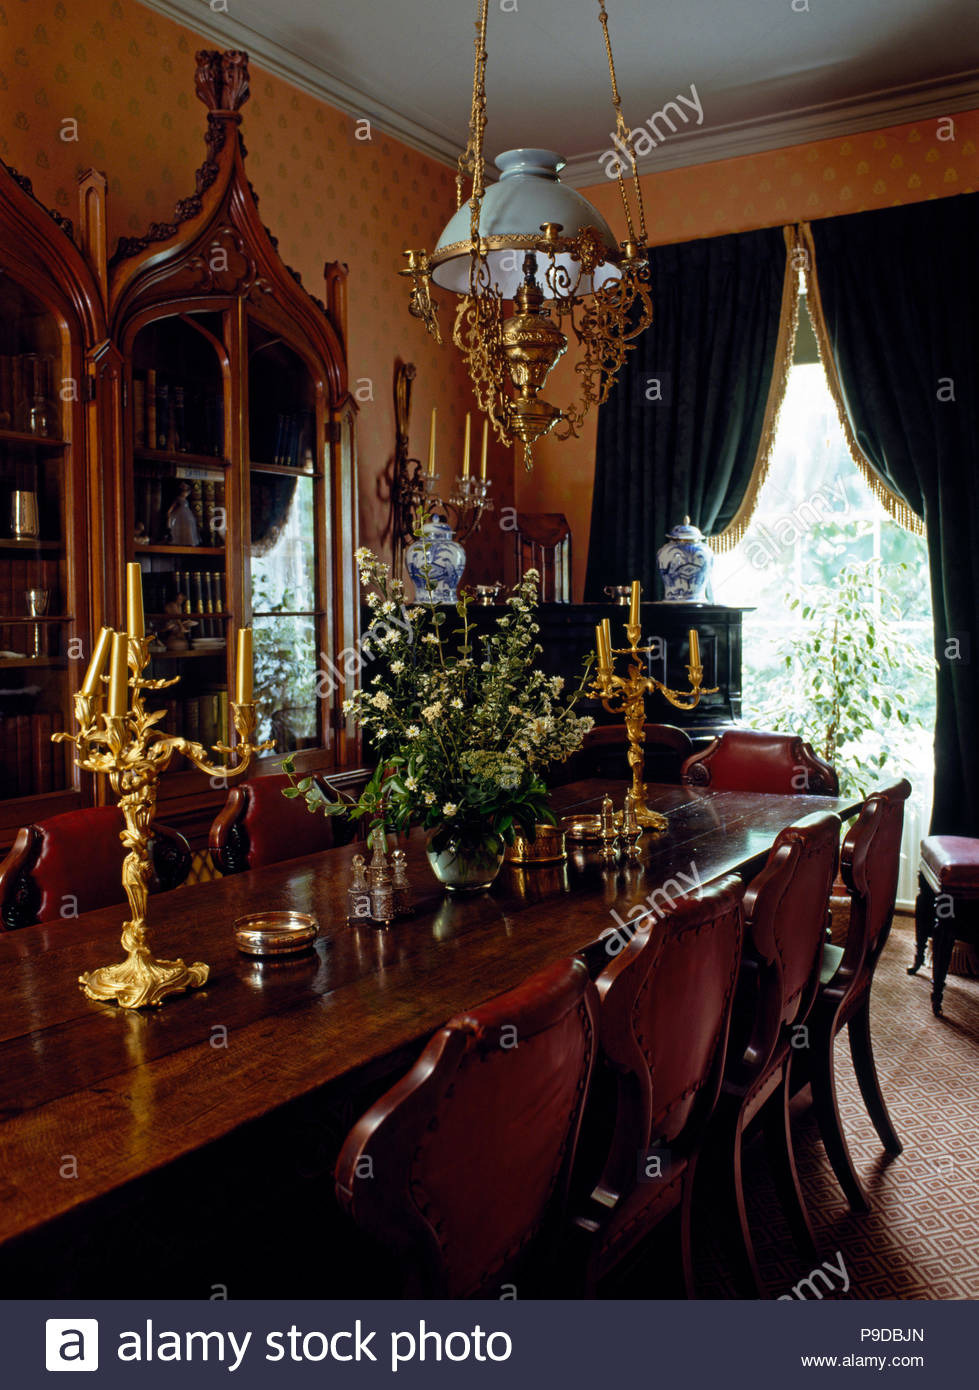 edwardian style glass and brass light fitting above an antique dining table with gilt candelabra in an old fashioned dining room P9DBJN